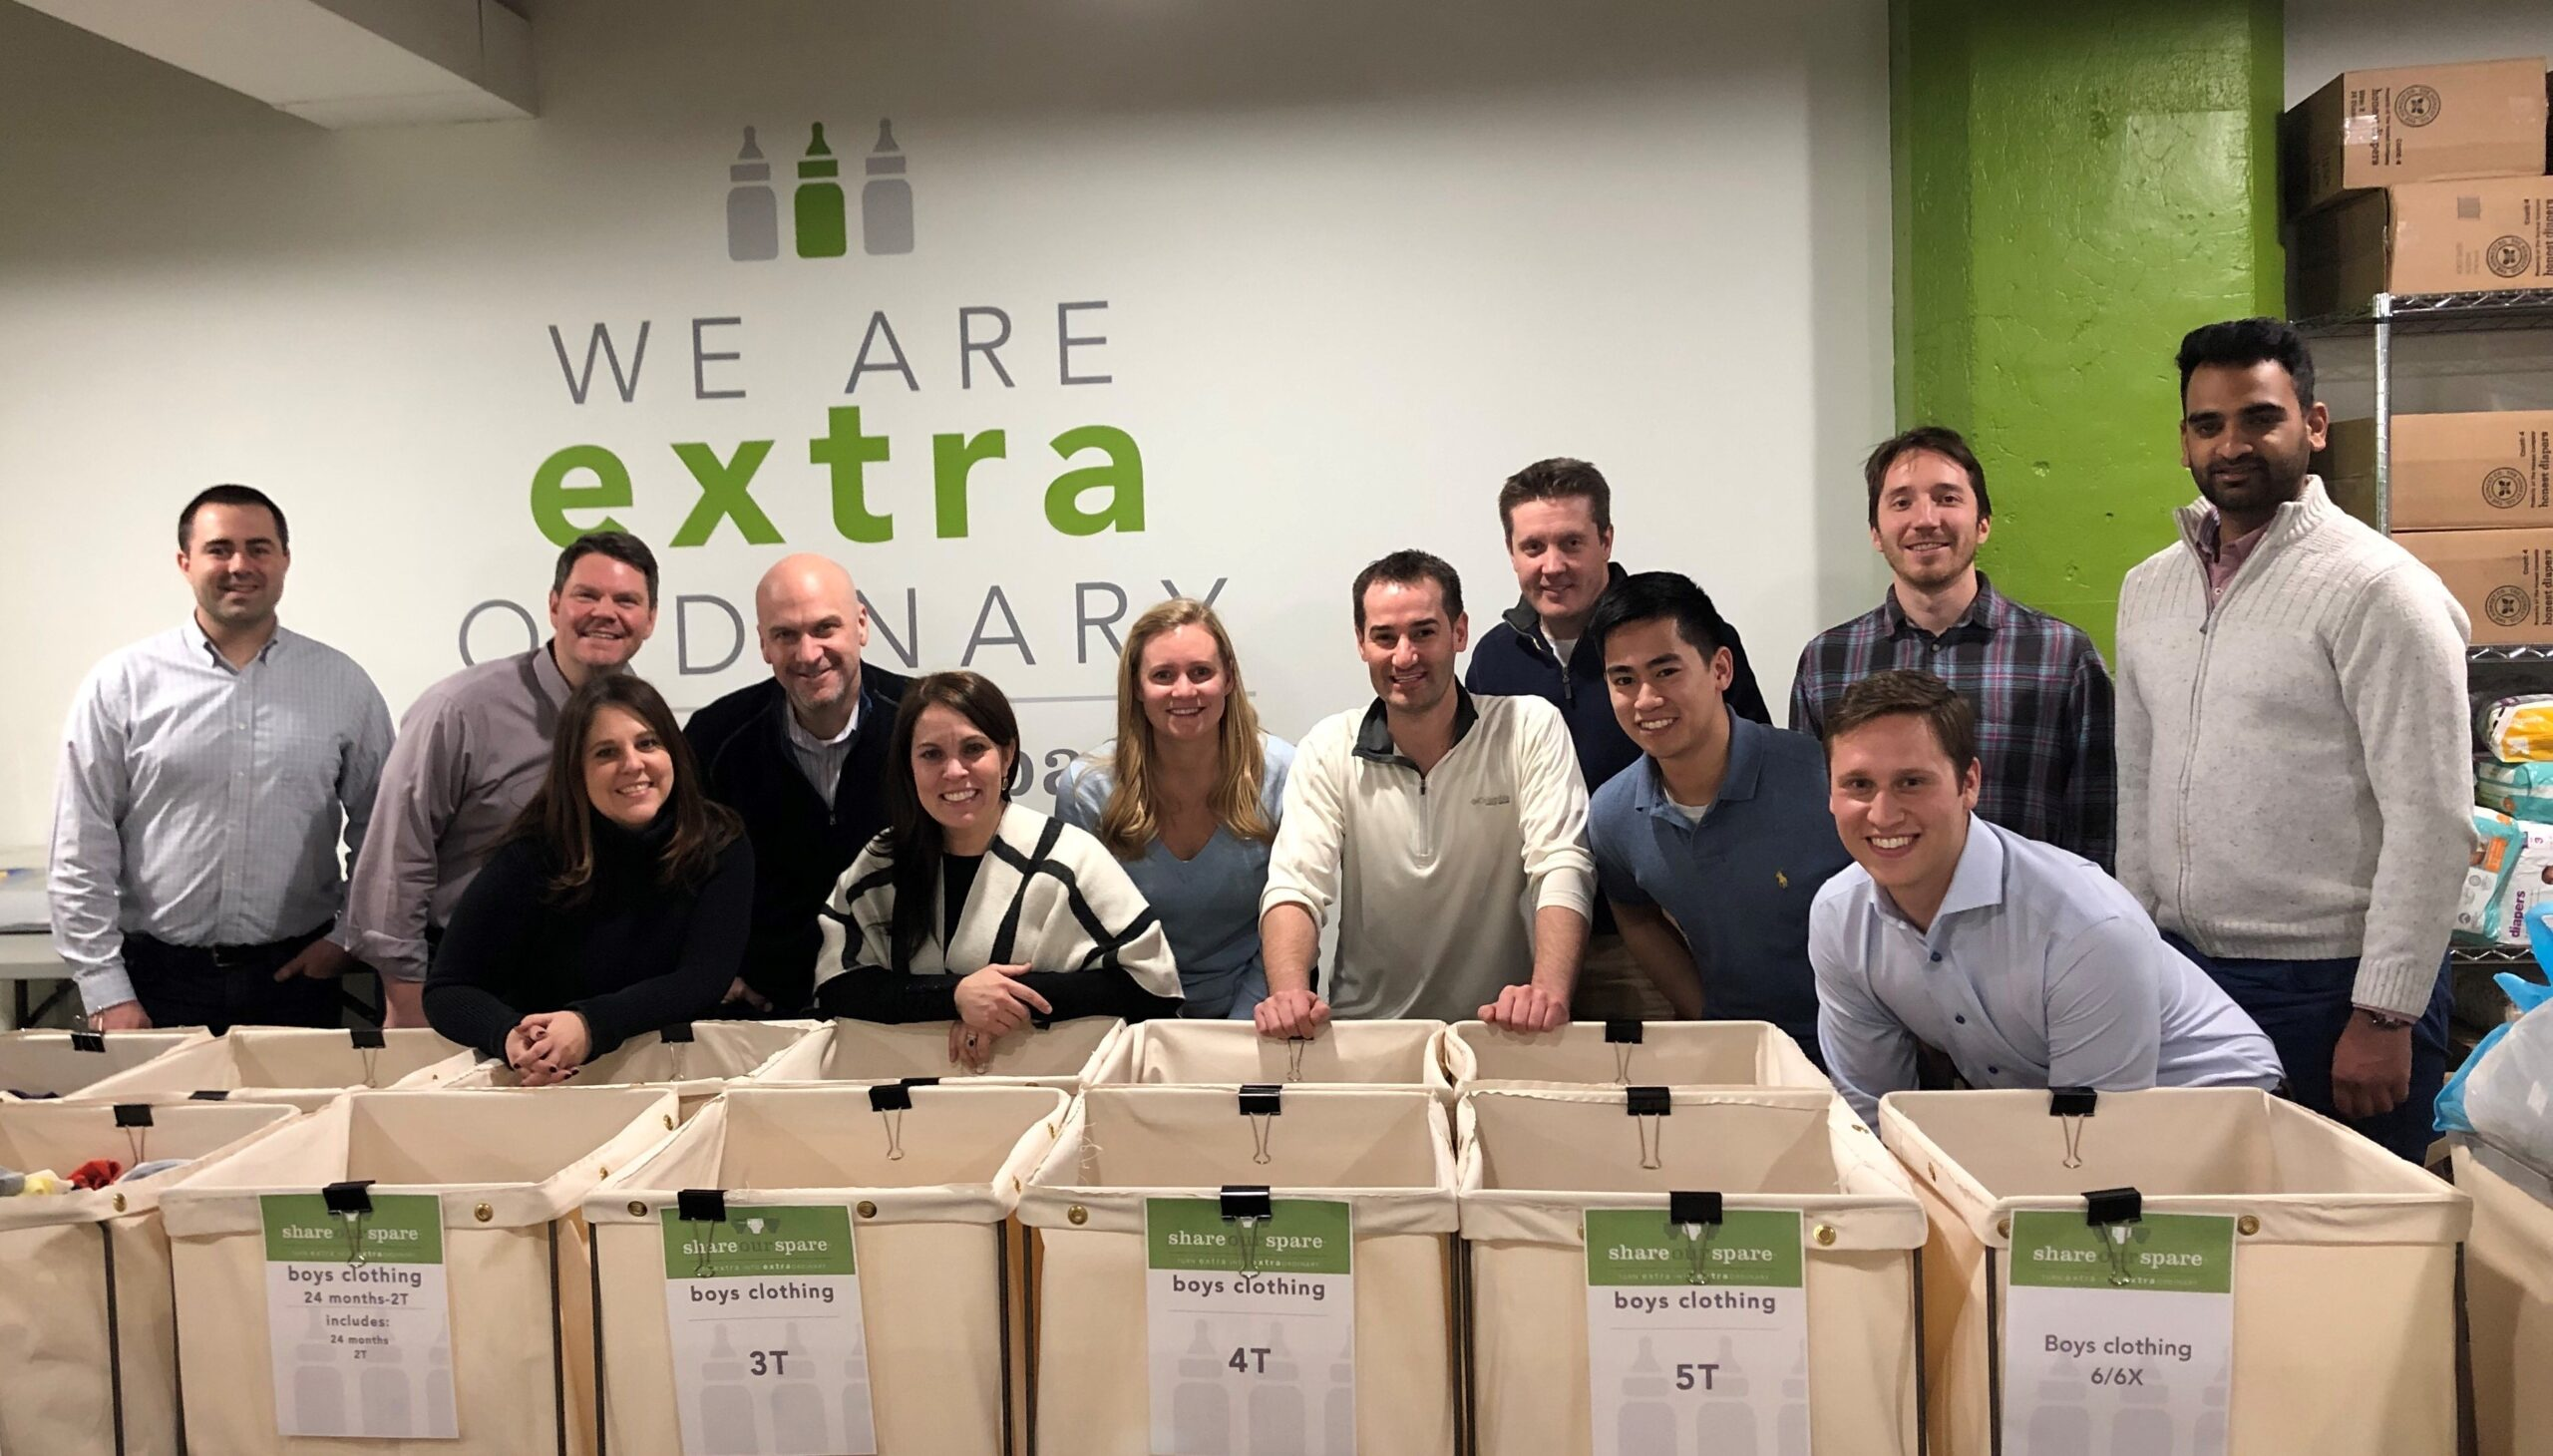 Kenway Employees Volunteering With Share Our Spare